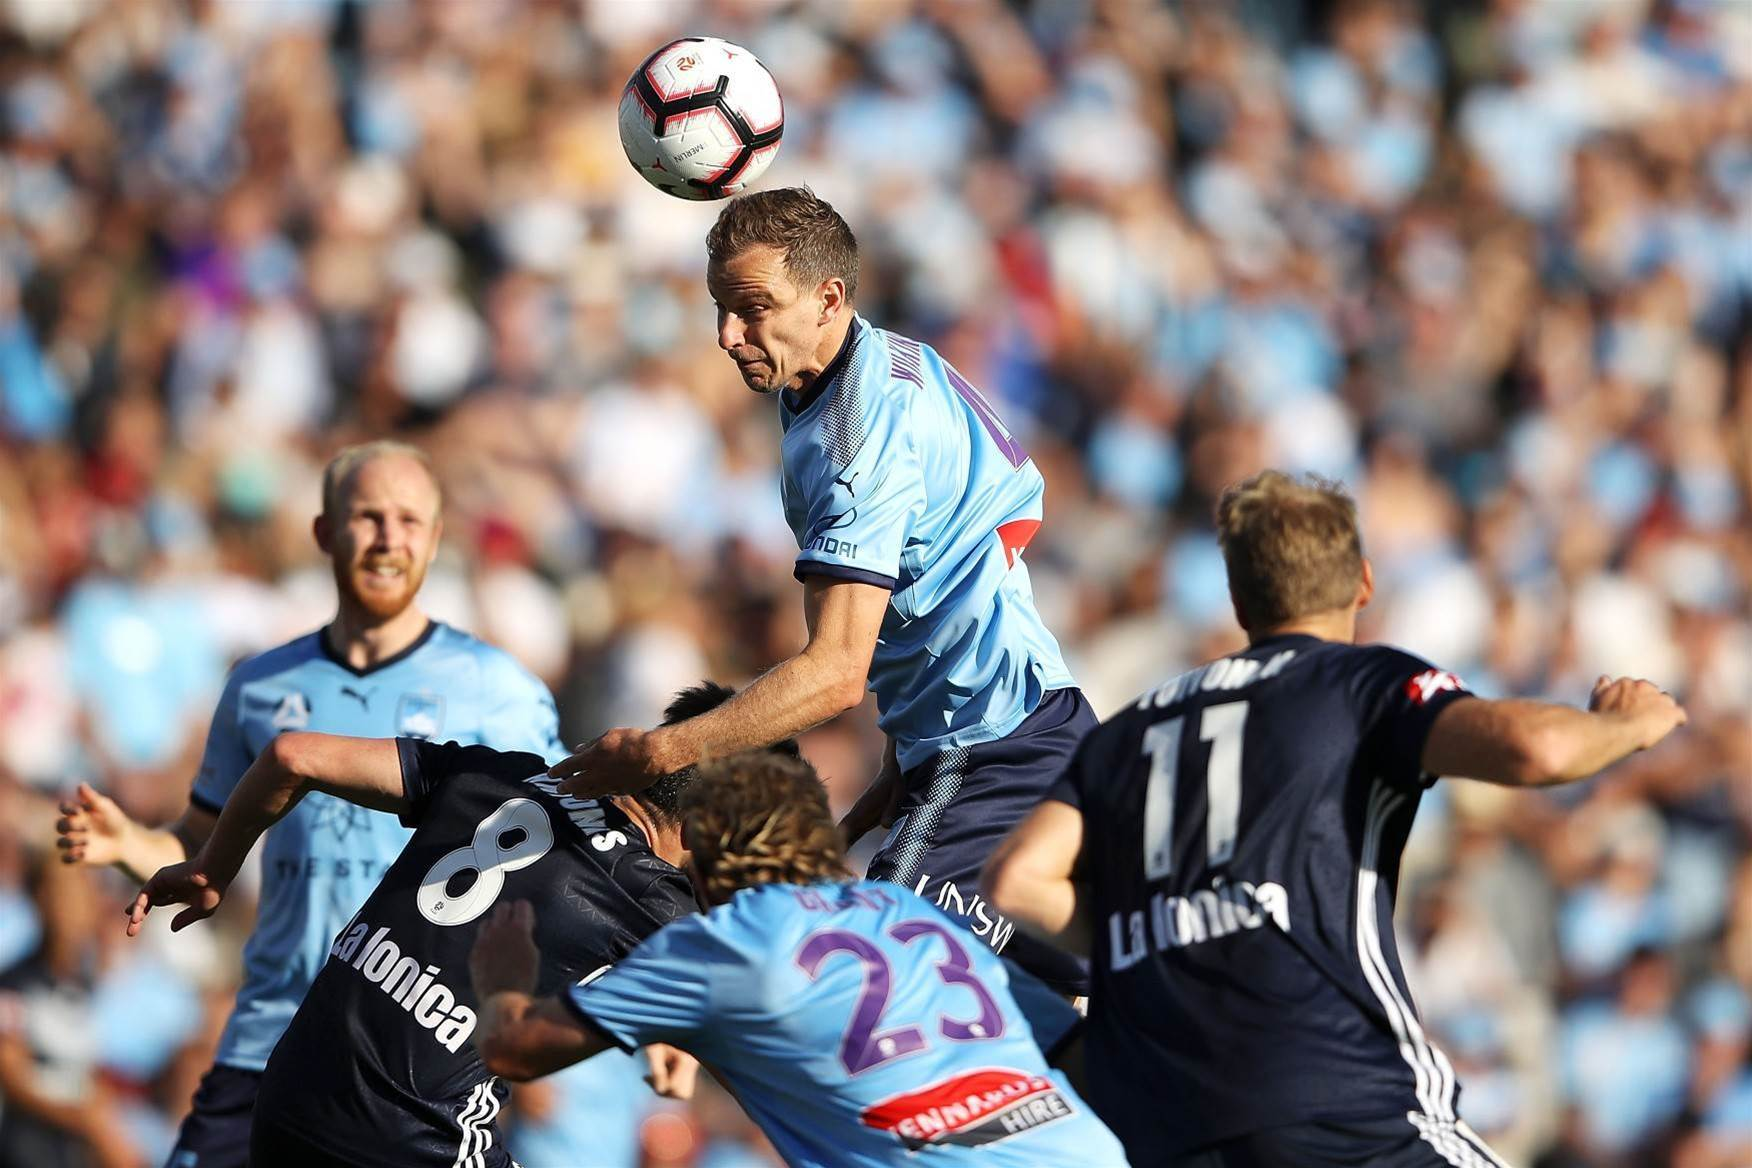 Pic special: Return of the A-League